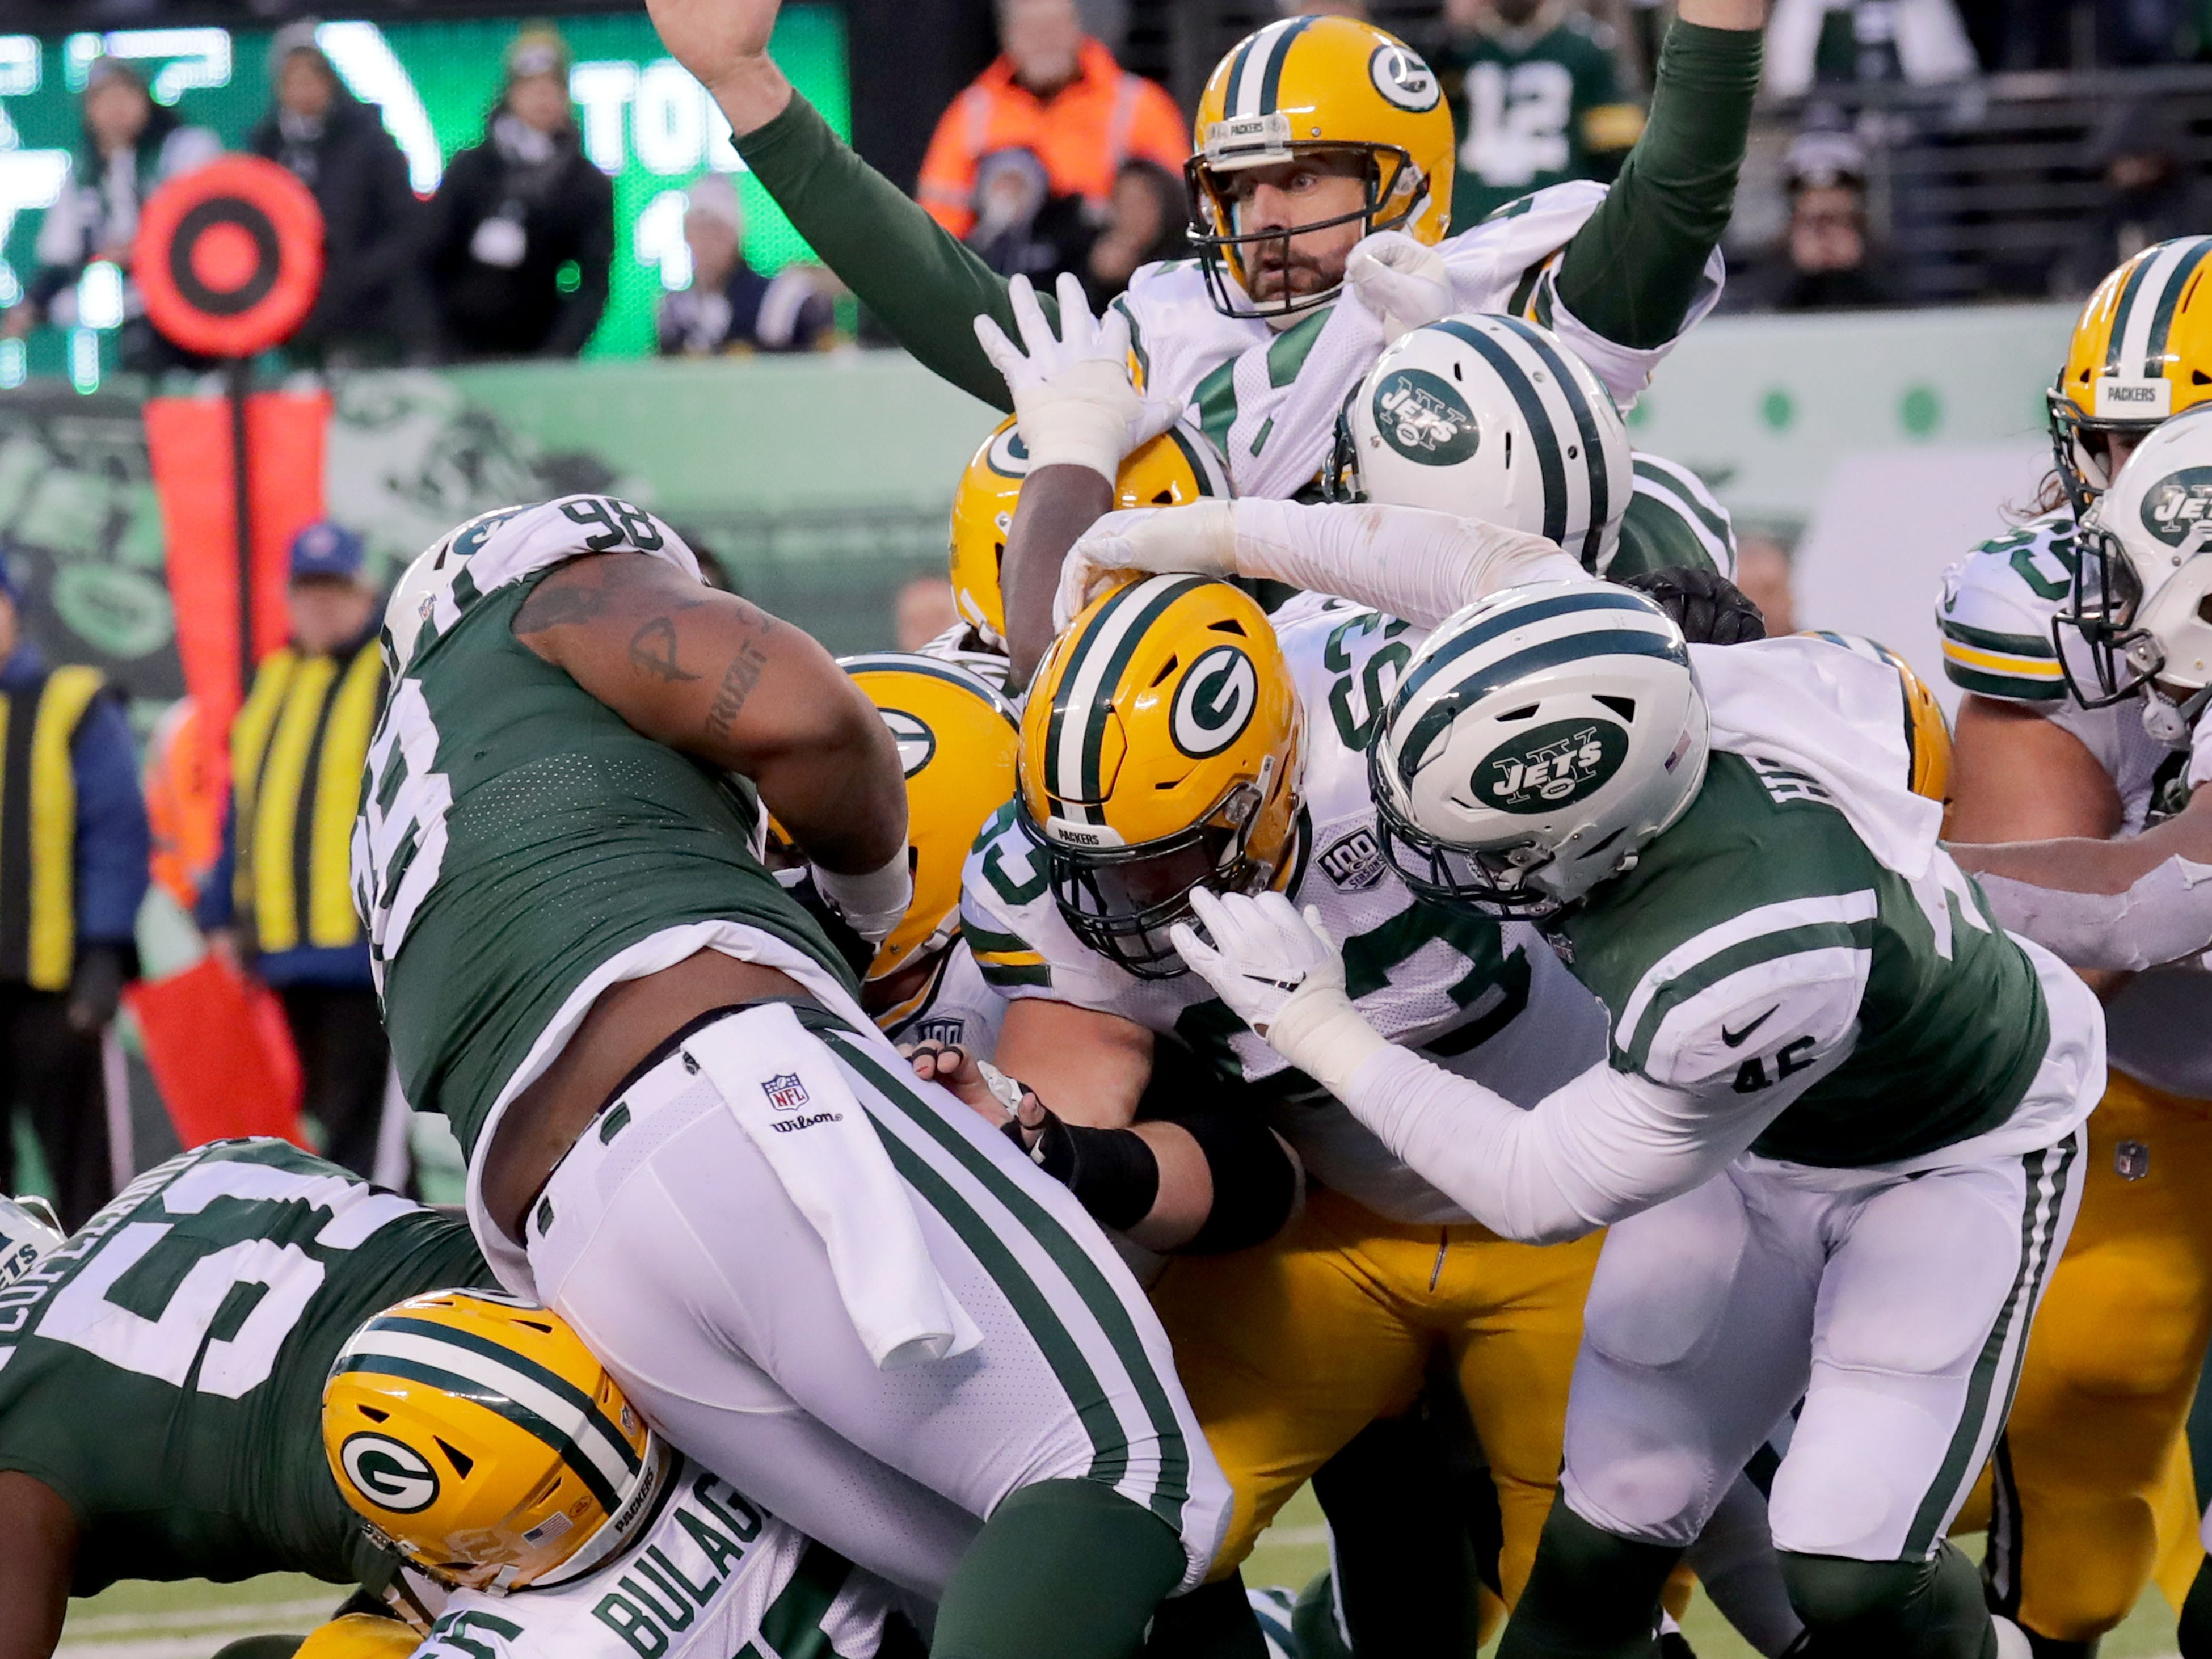 Green Bay Packers' Aaron Rodgers signals a touchdown after he reached across the goal line for the score during the 2nd half of Packers 44-38 overtime win against the New York Jets at MetLife Stadium Sunday, Dec. 23, 2018, in East Rutherford.